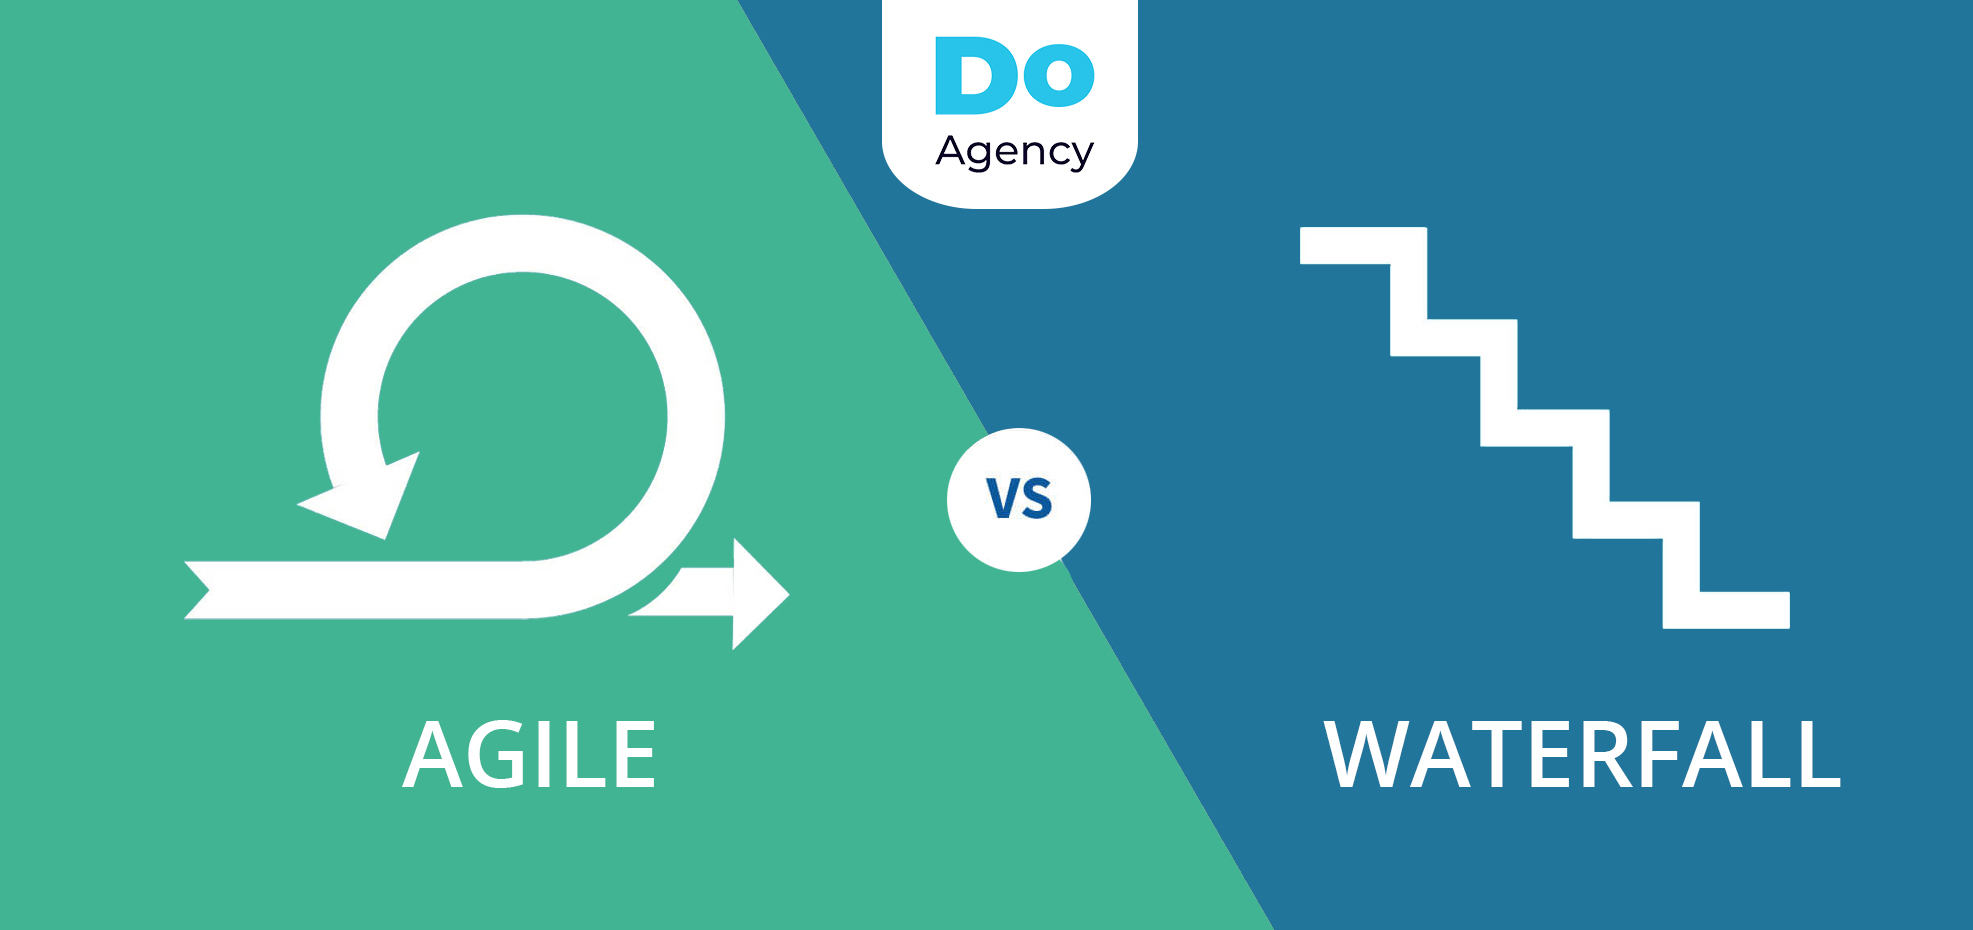 Agile o Waterfall